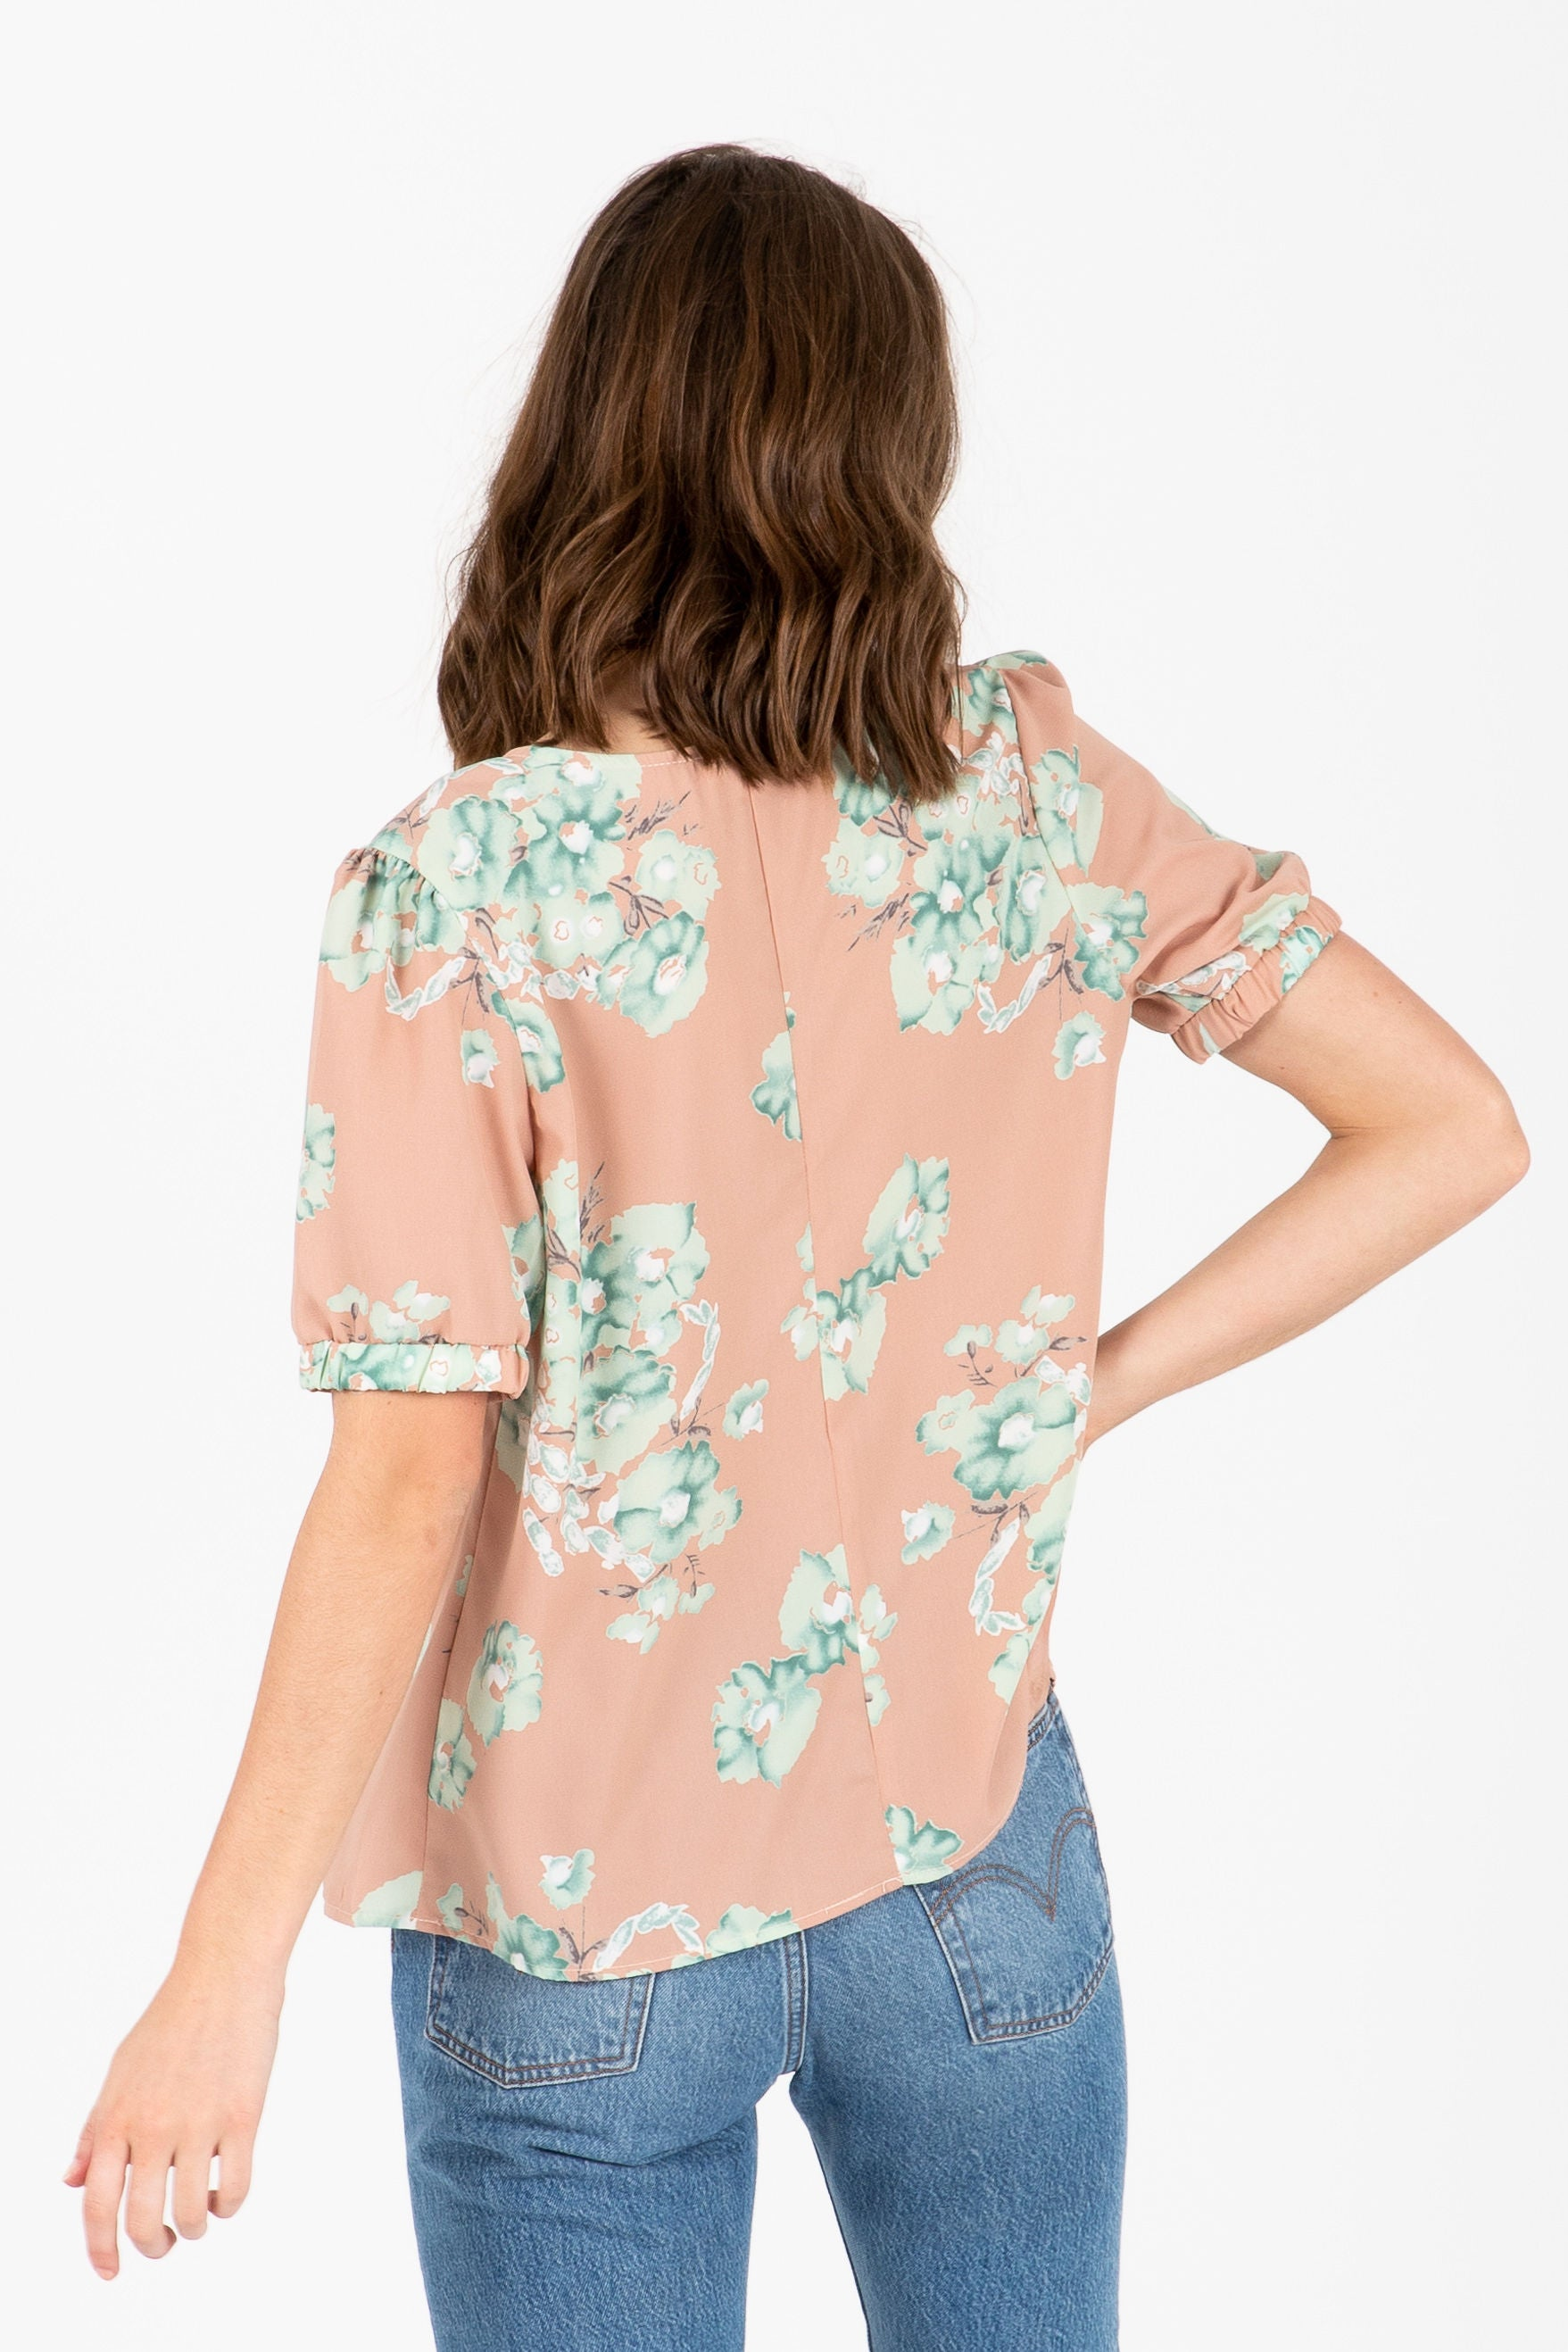 The Superbloom Floral Blouse in Mauve